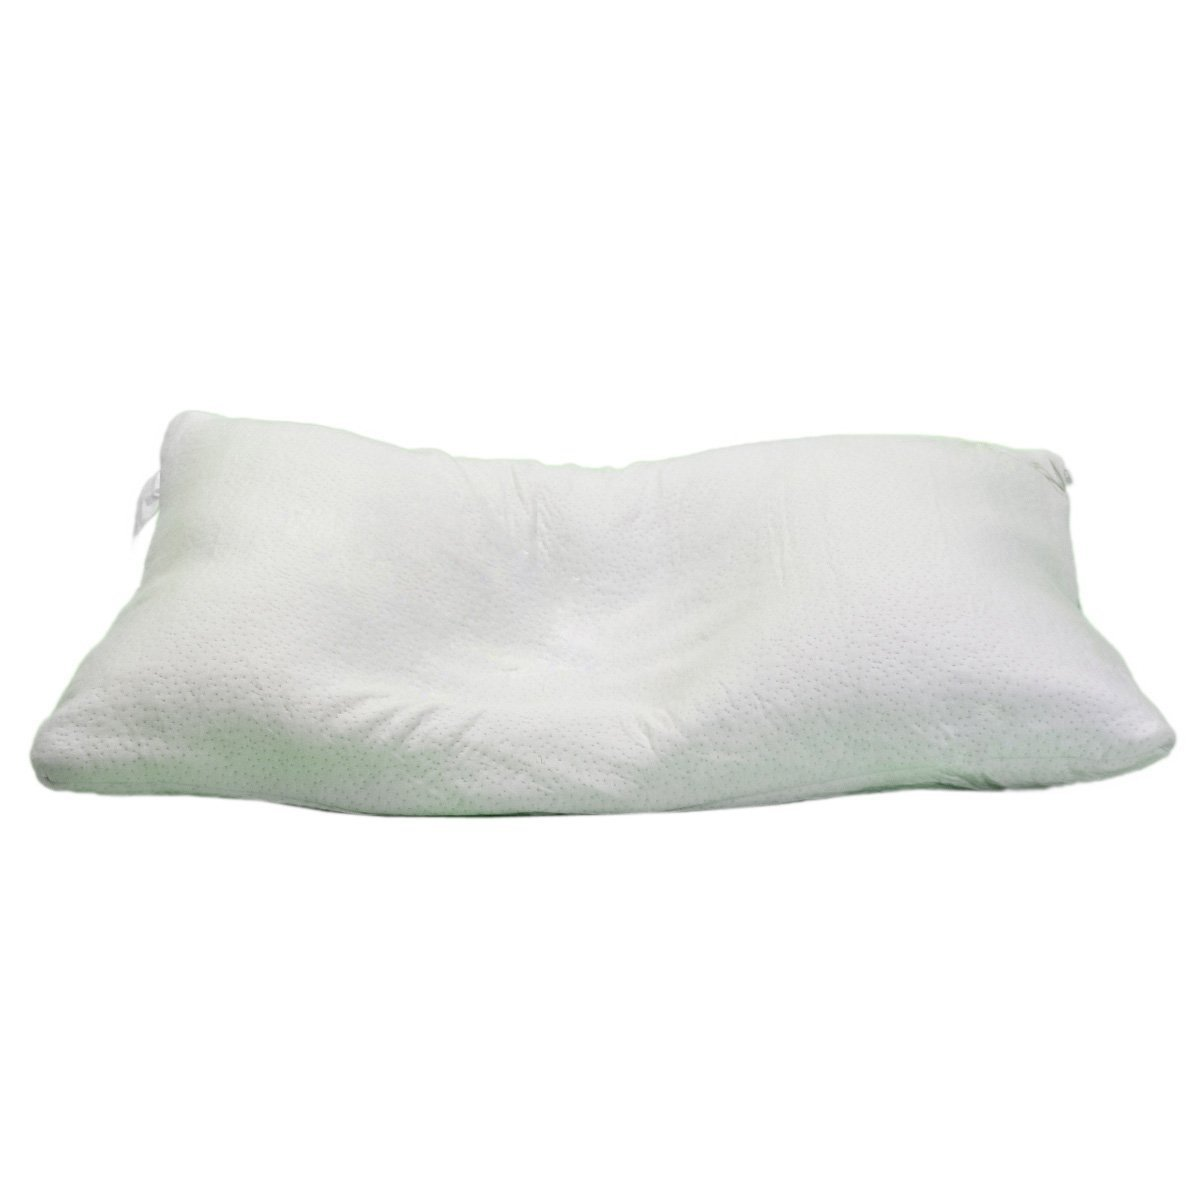 Top 10 Best Memory Foam Pillows to Help You Get High-Quality Sleep